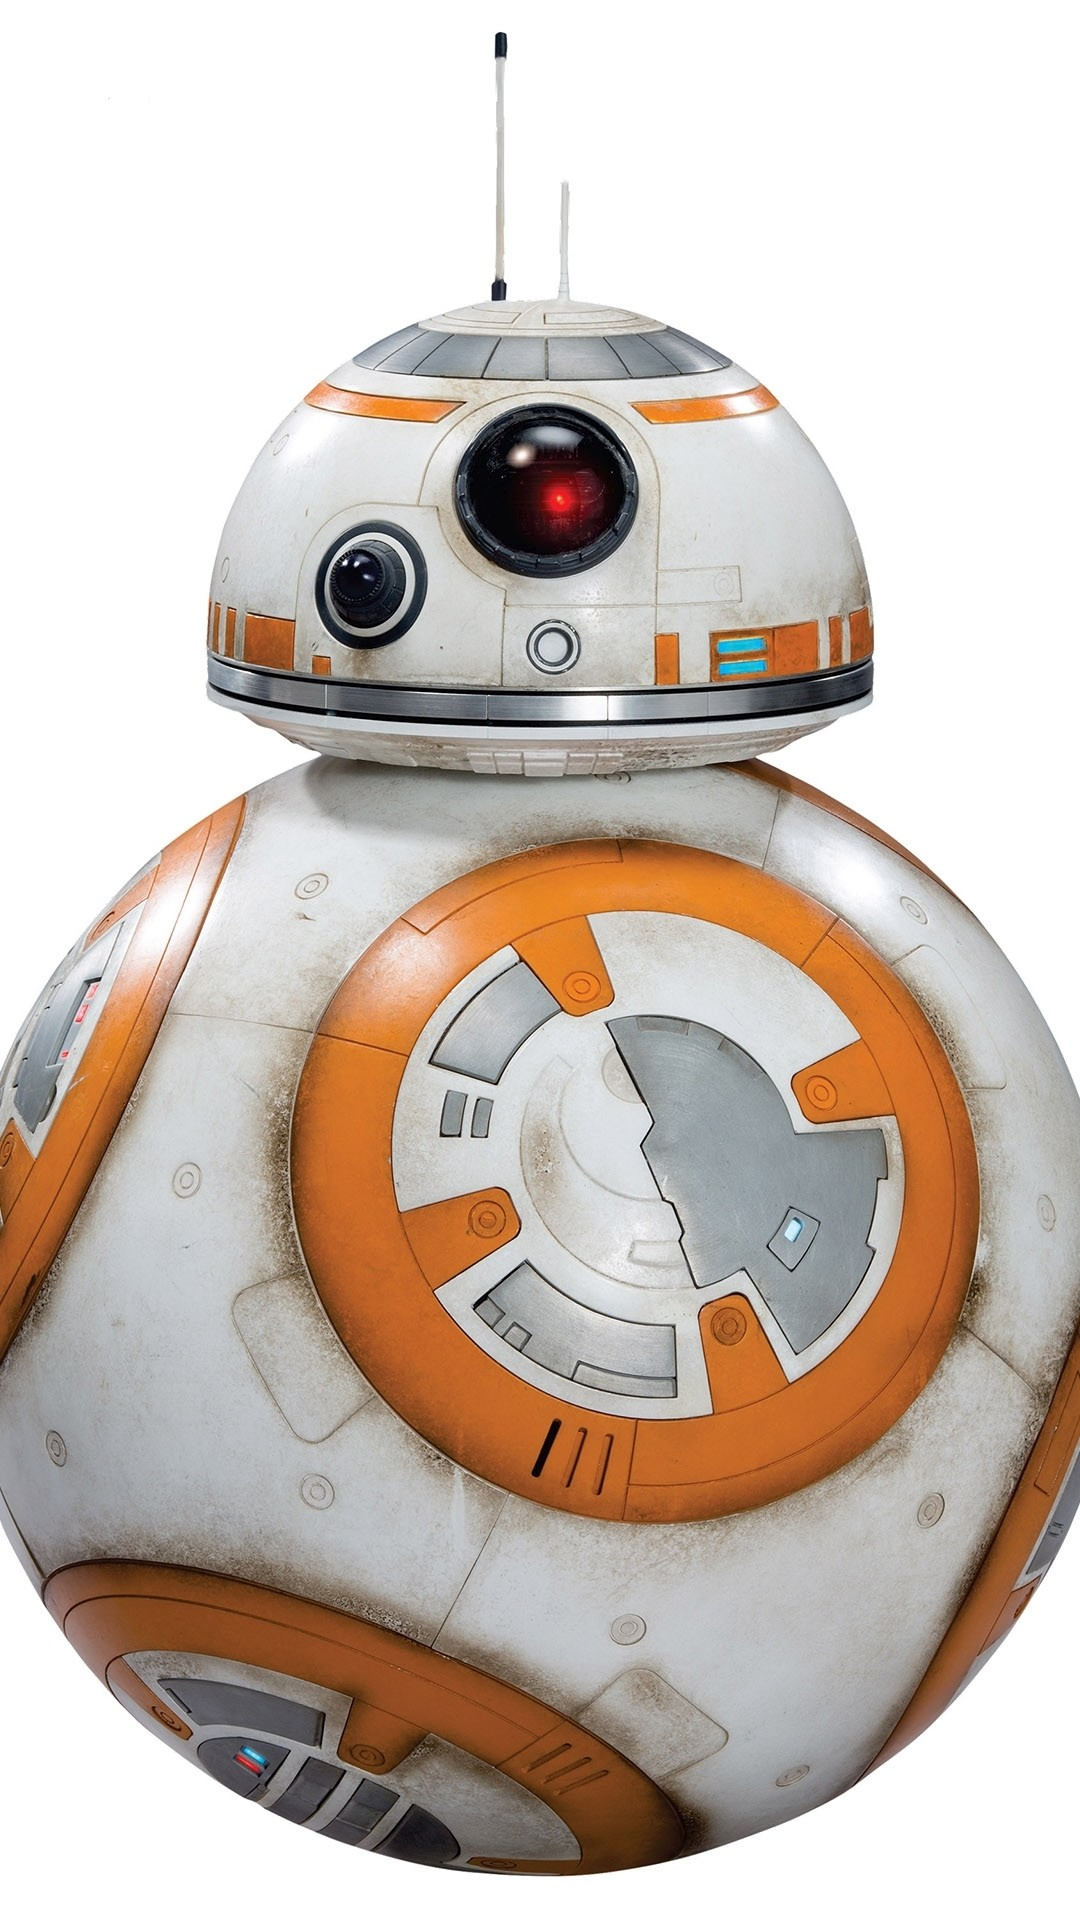 BB-8 from Star Wars: Episode VII – The Force Awakens Wallpaper